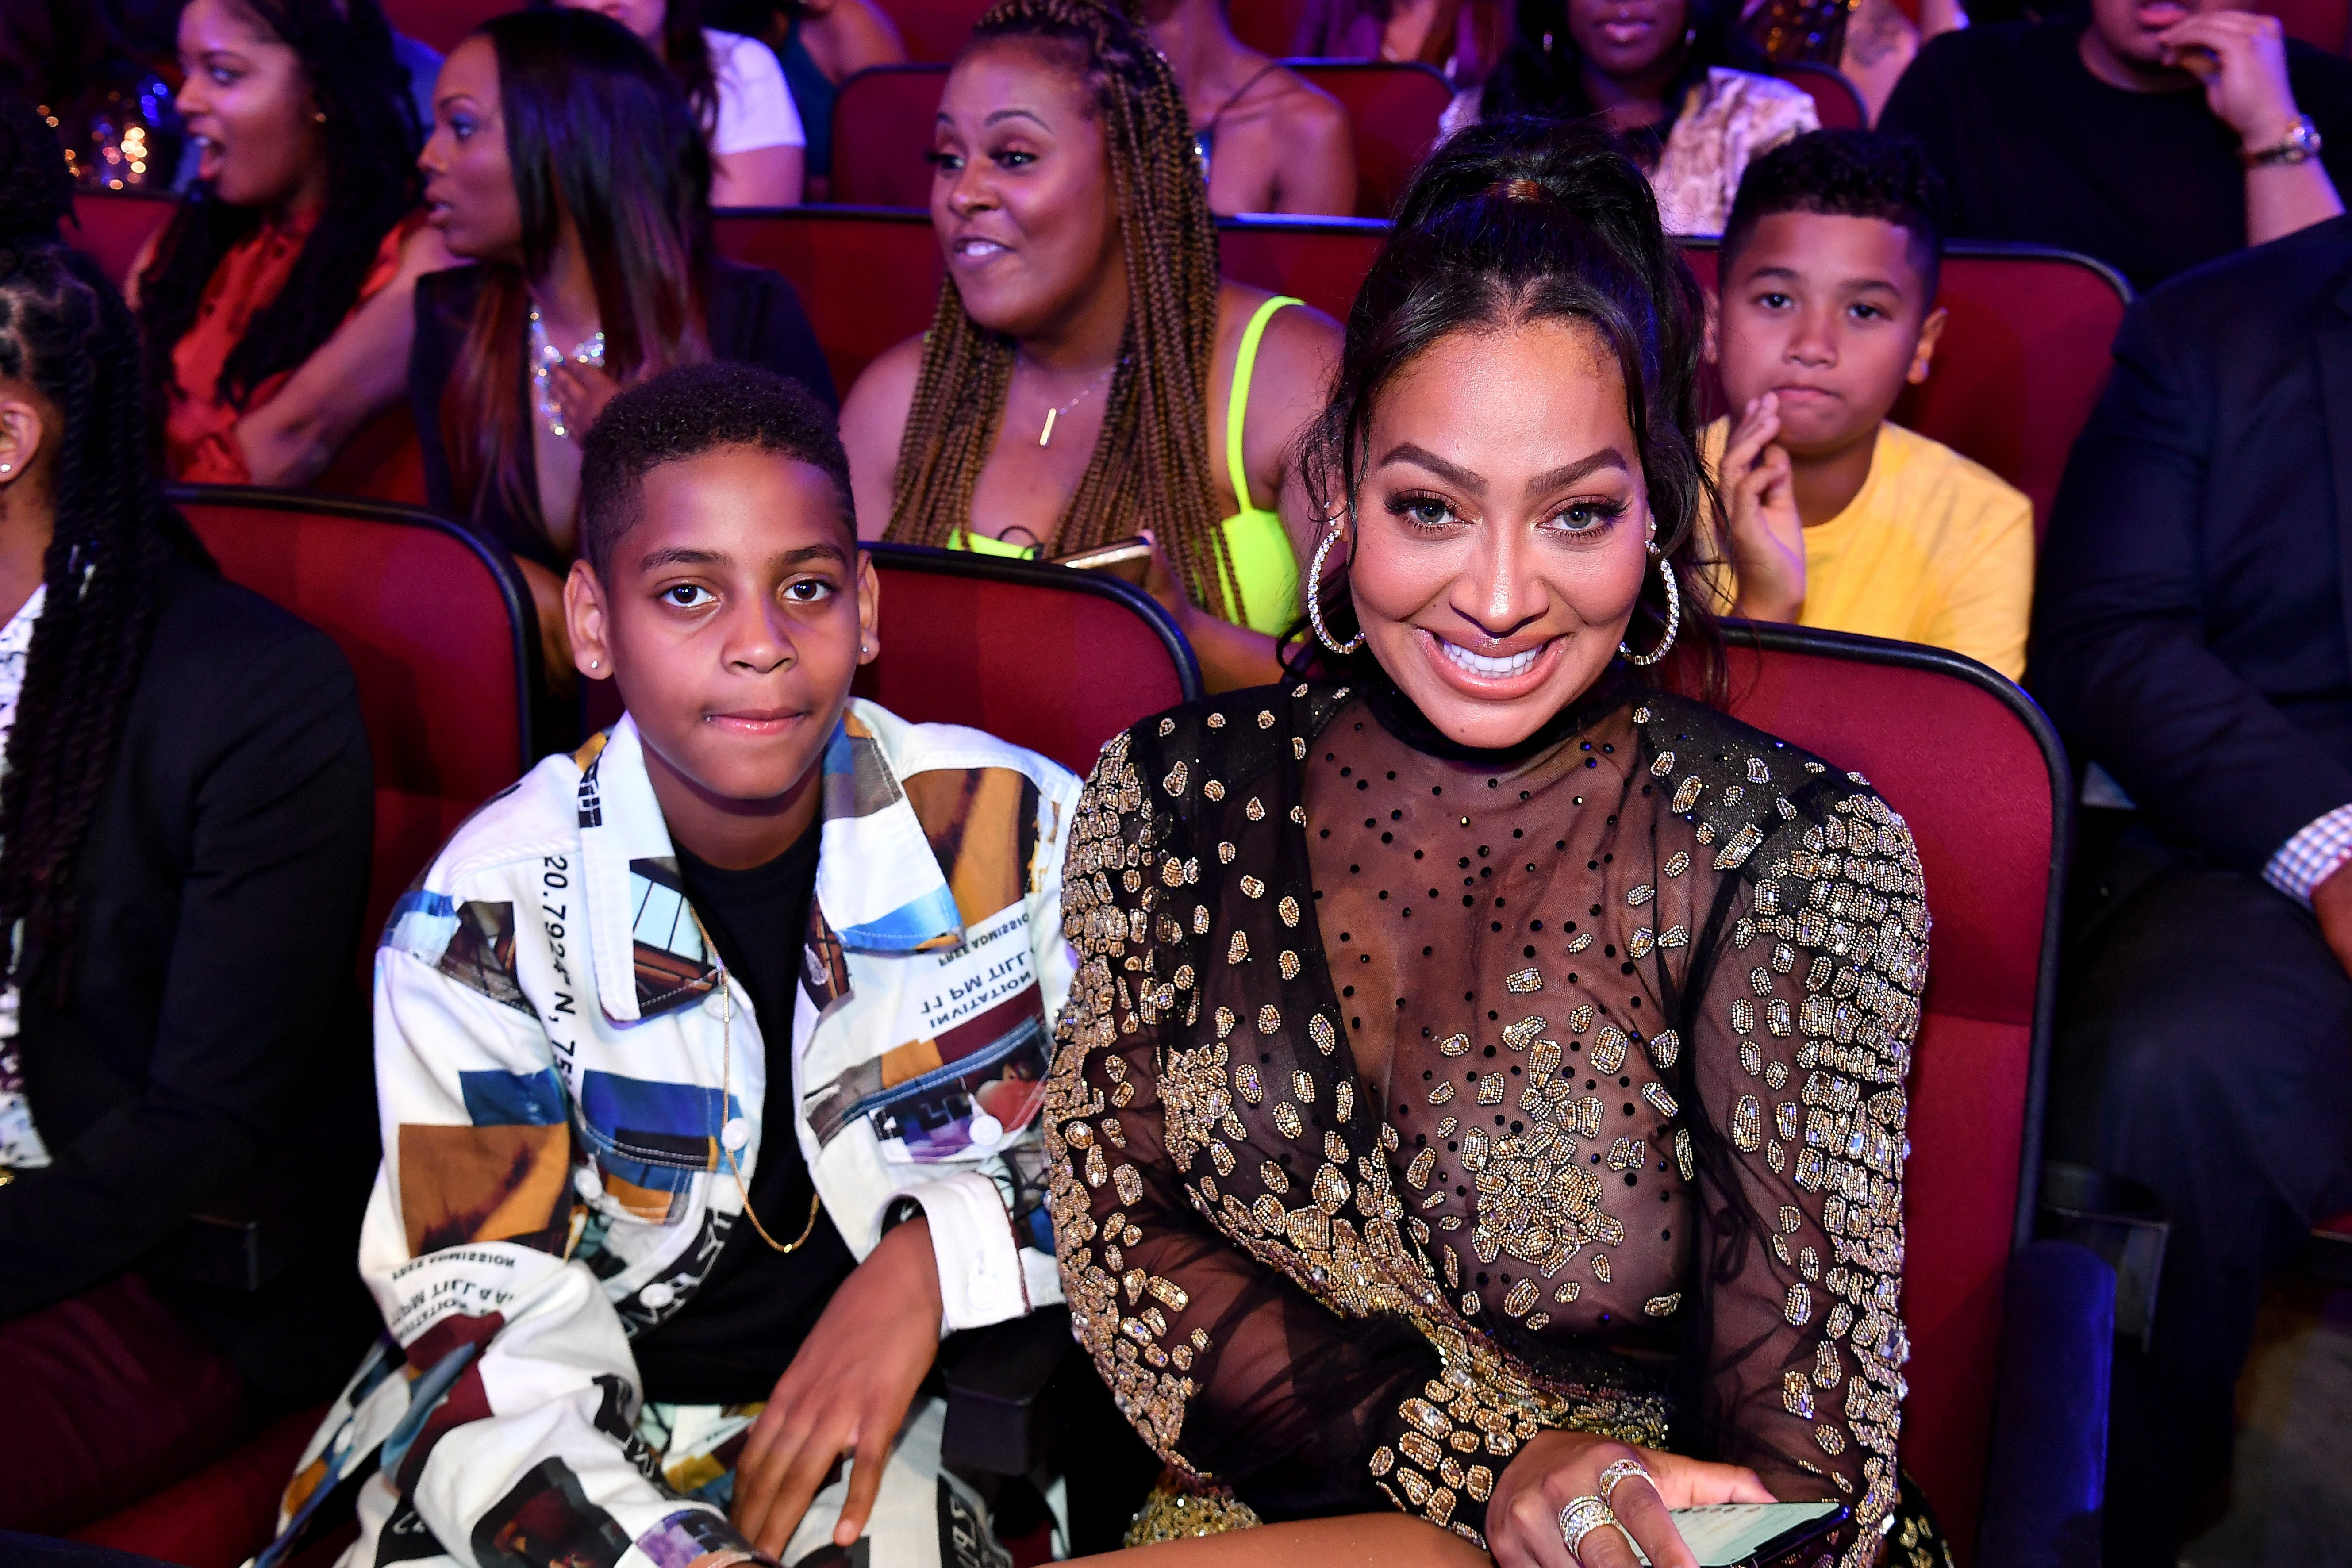 La La Anthony and her son with Carmelo Anthony, Kiyan, at the 2019 BET Awards. | Photo: Getty Images